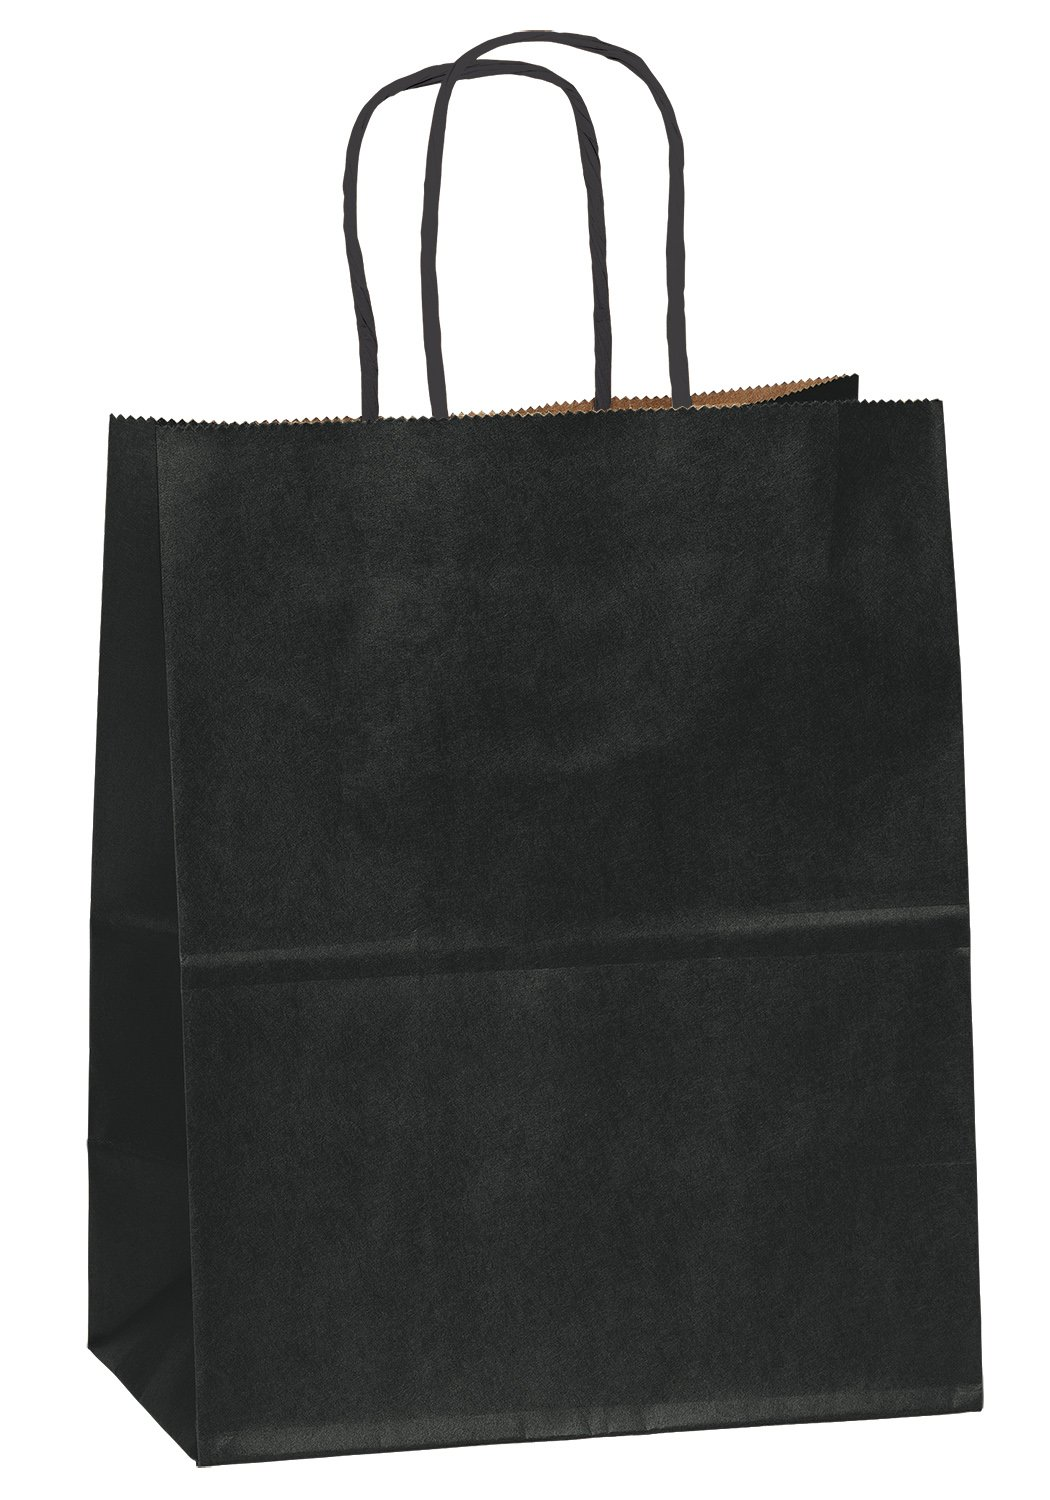 Flexicore Packaging Black Kraft Paper Bags Size: 8 Inch X 4.75 Inch x 10.25 Inch | Count: 100 Bags | Color: Black by Flexicore Packaging